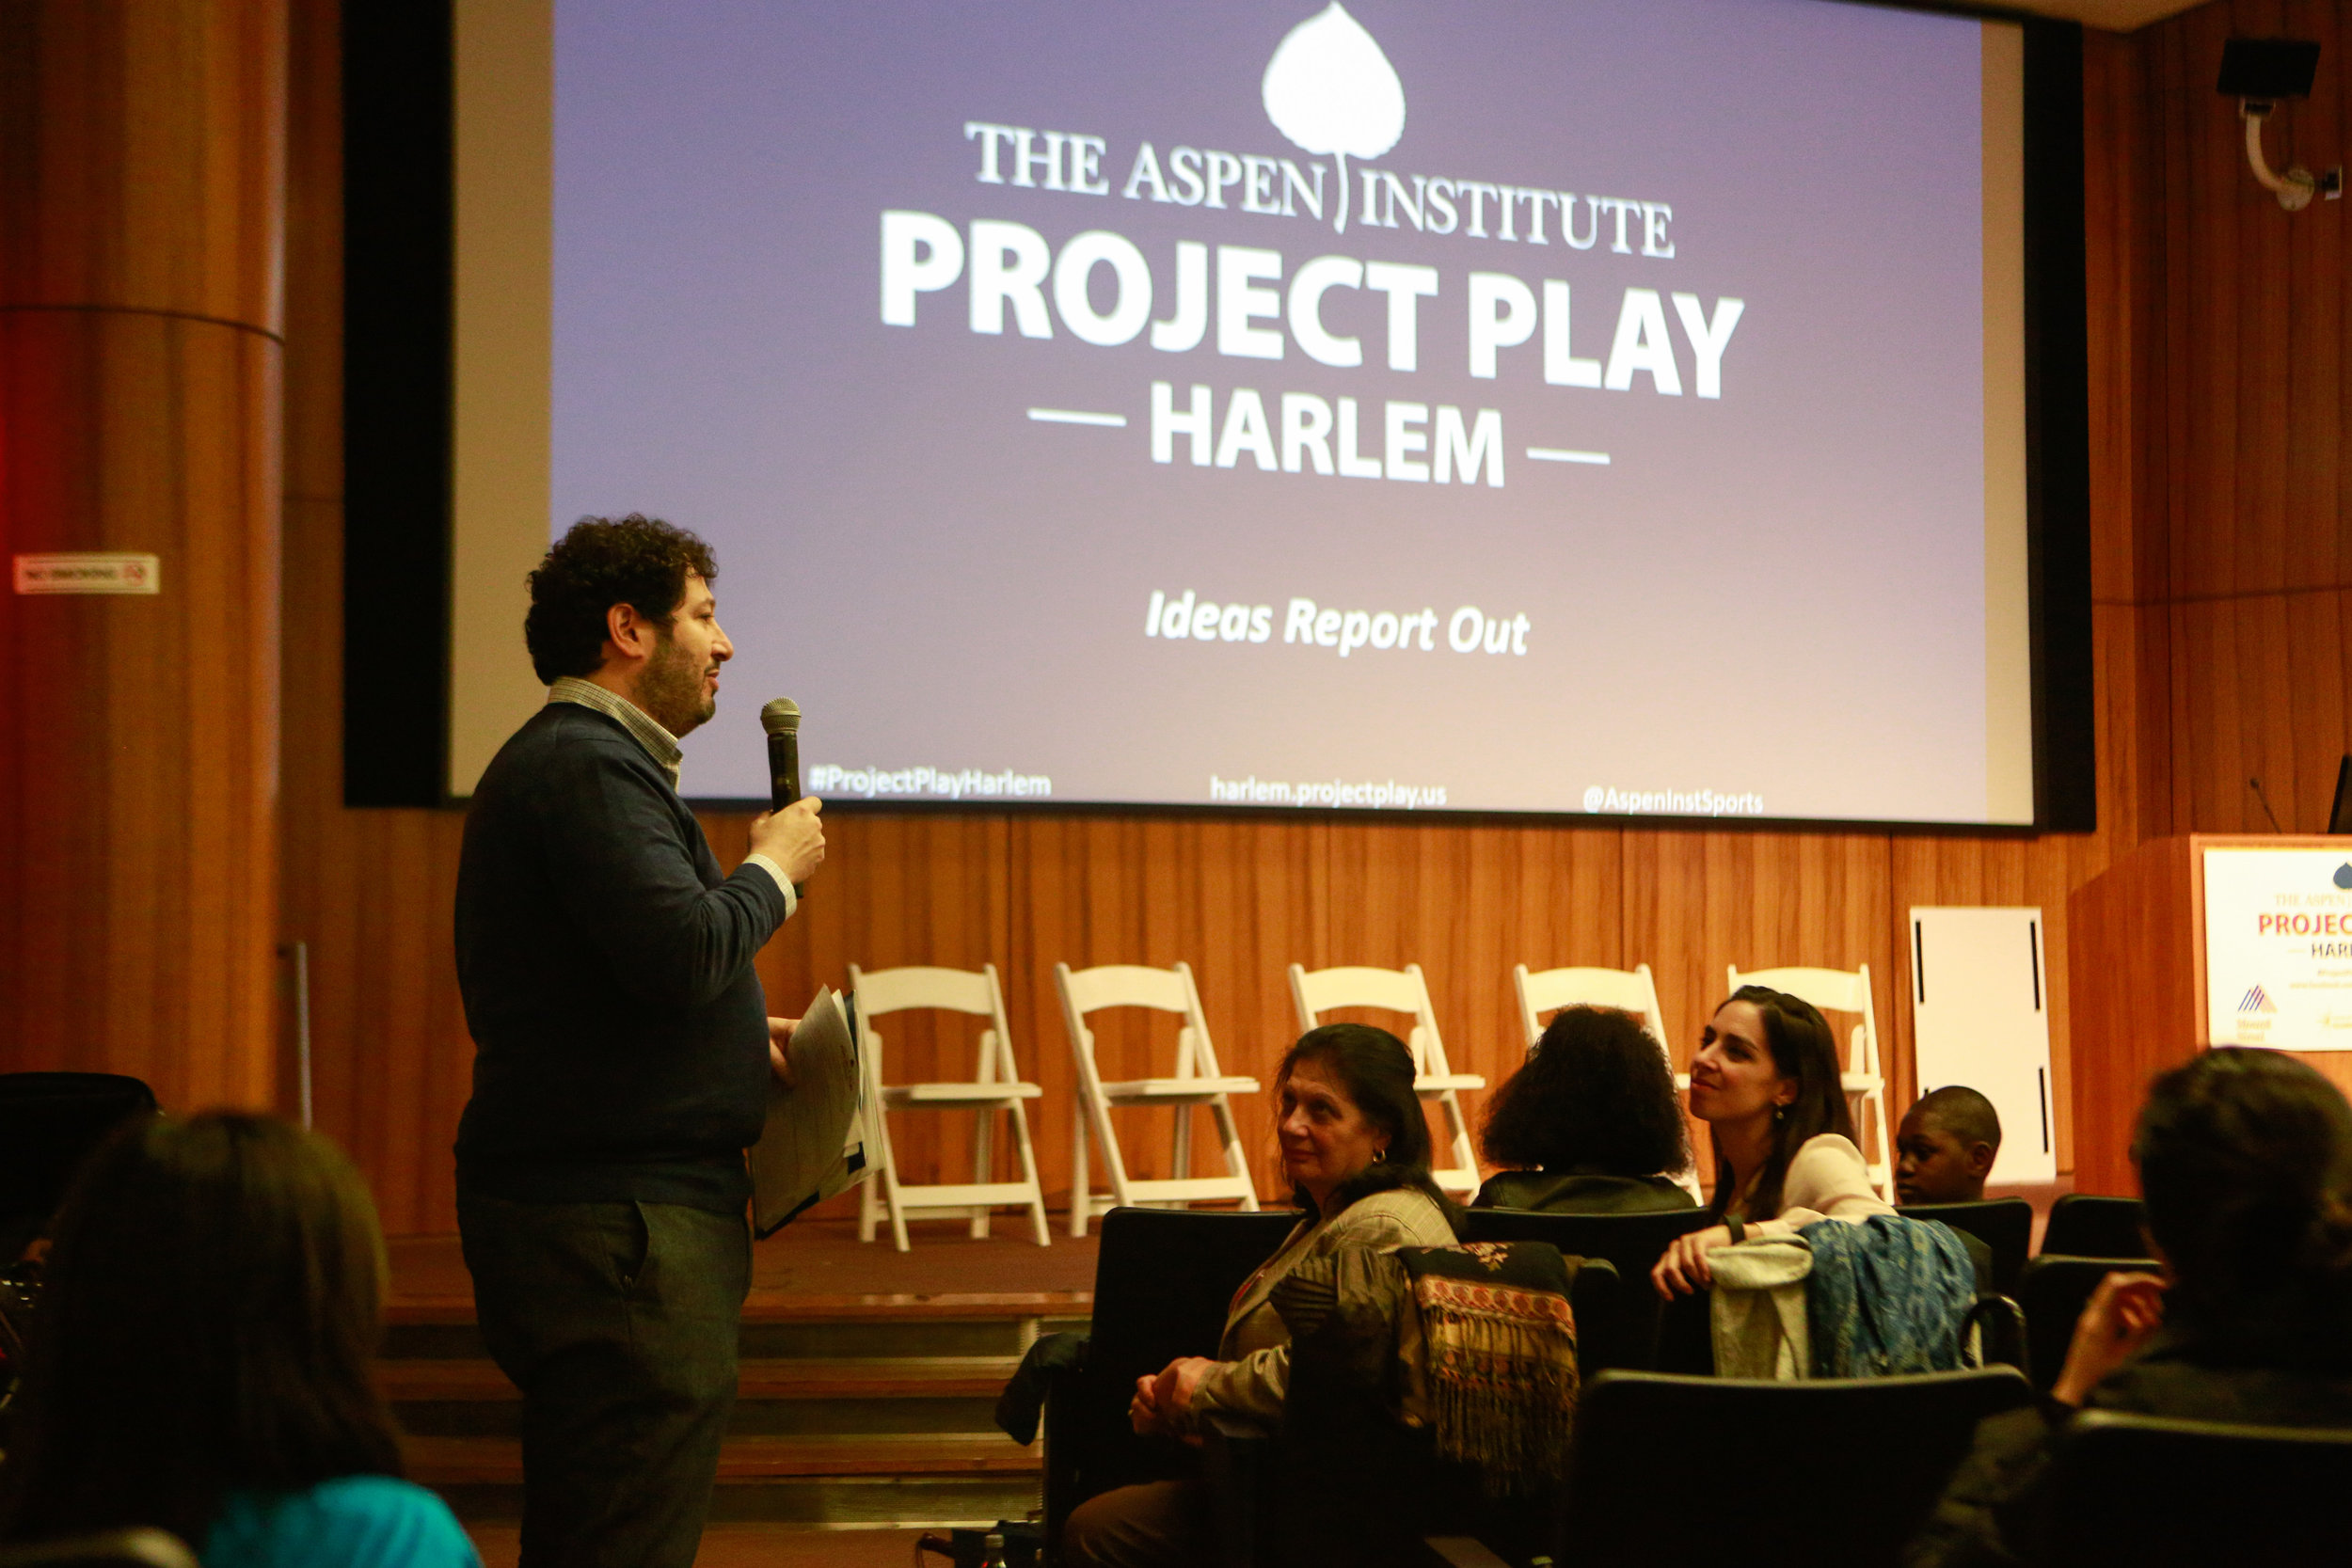 Aspen Institute_Harlem Huddle_20170123_CDG_114.JPG